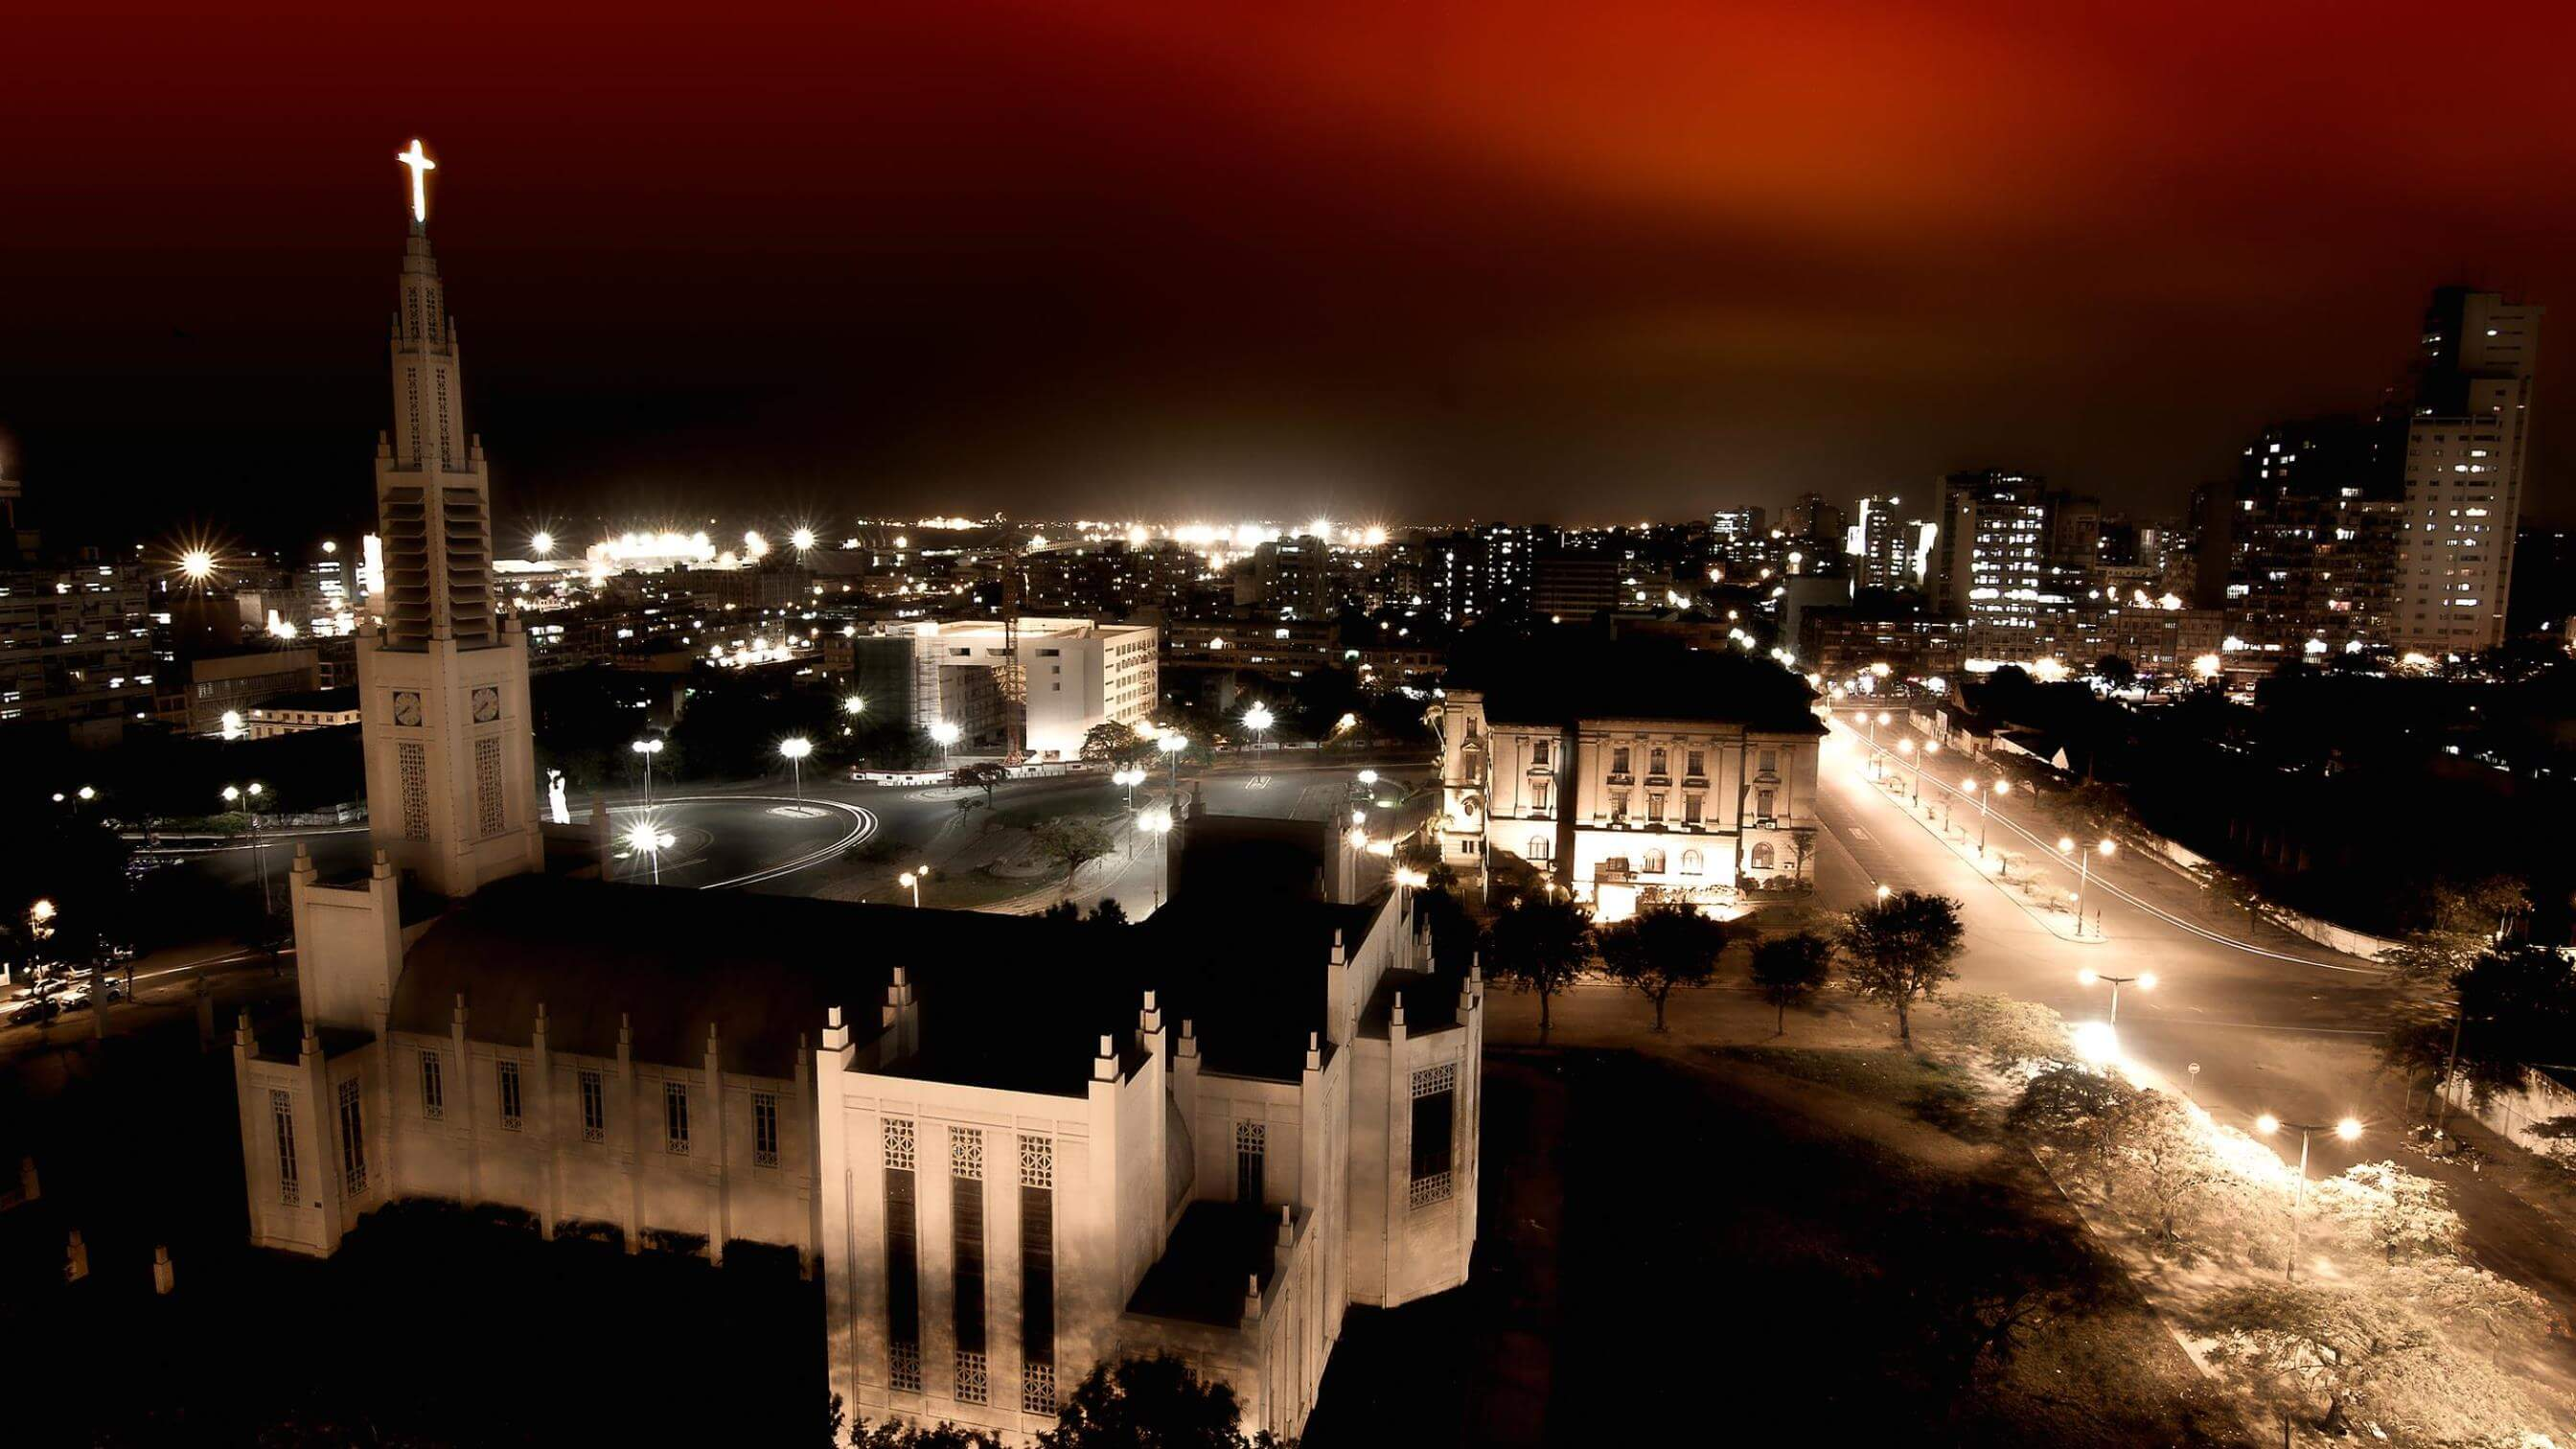 Mozambique capital at night